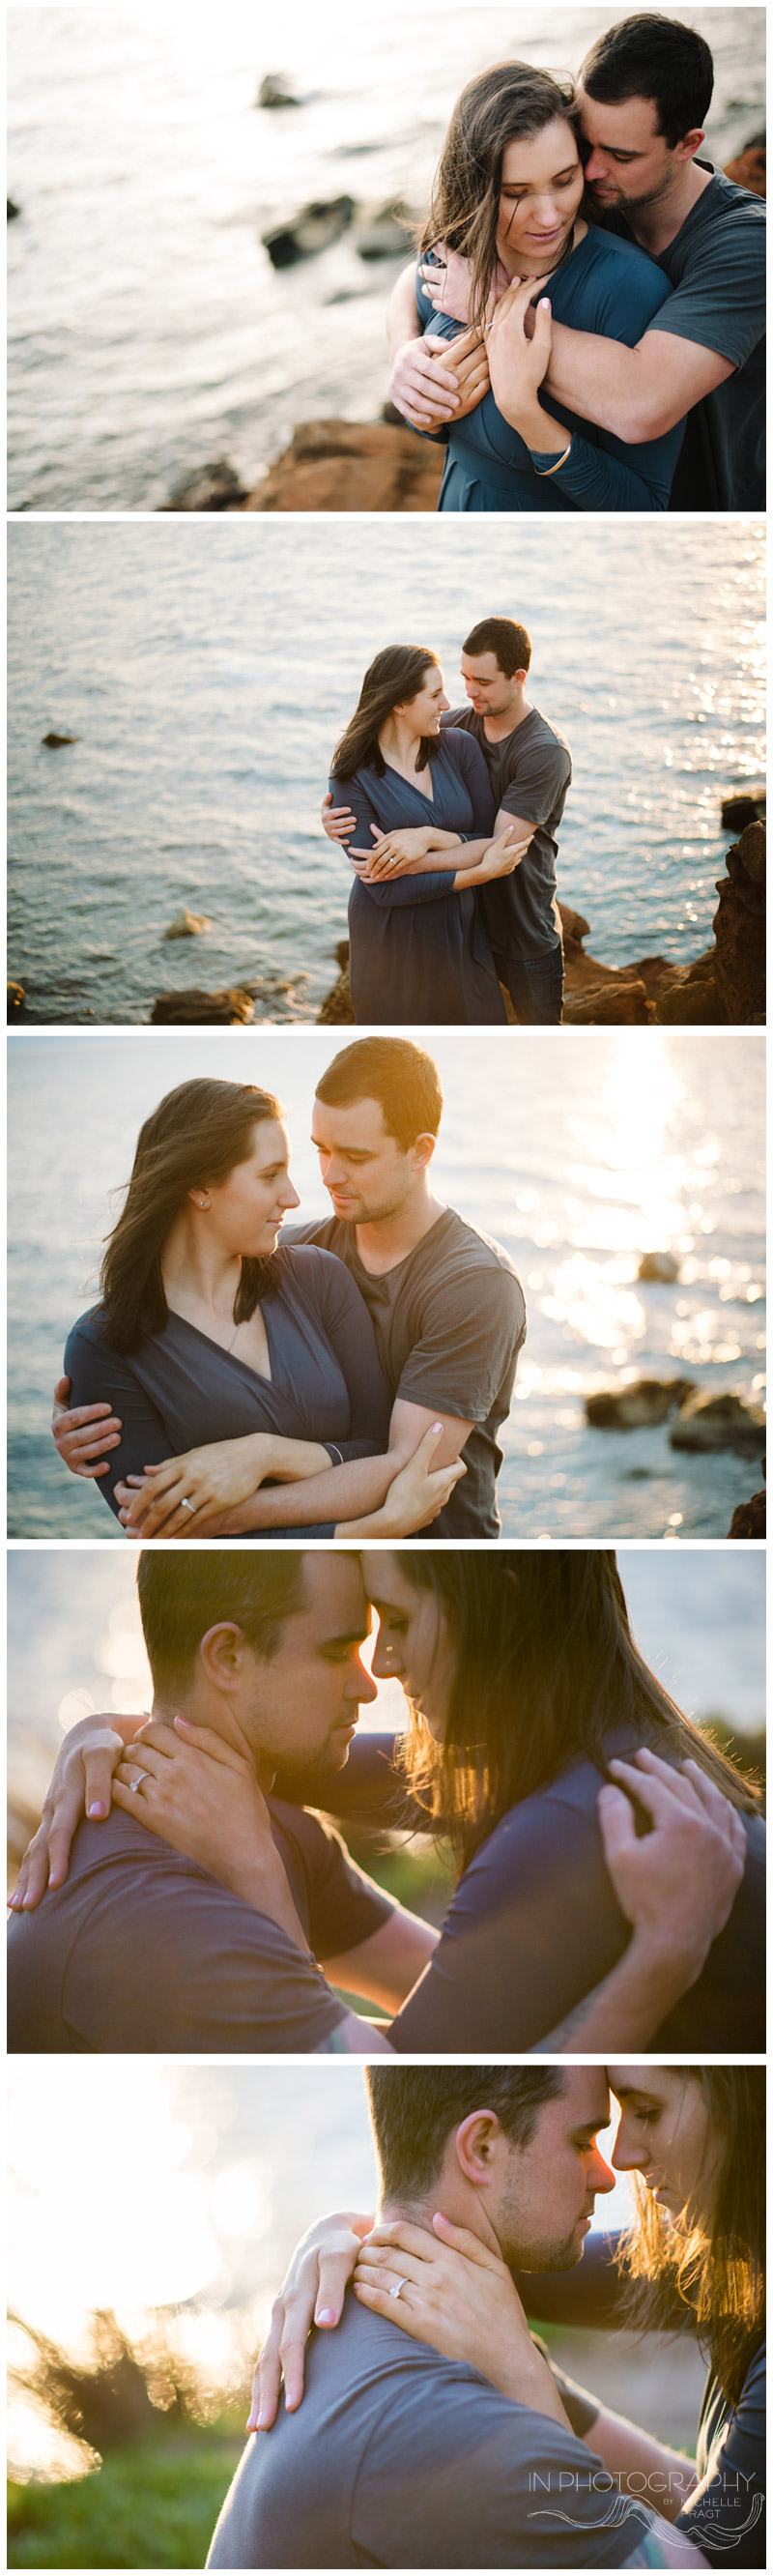 Maternity sunset beach session